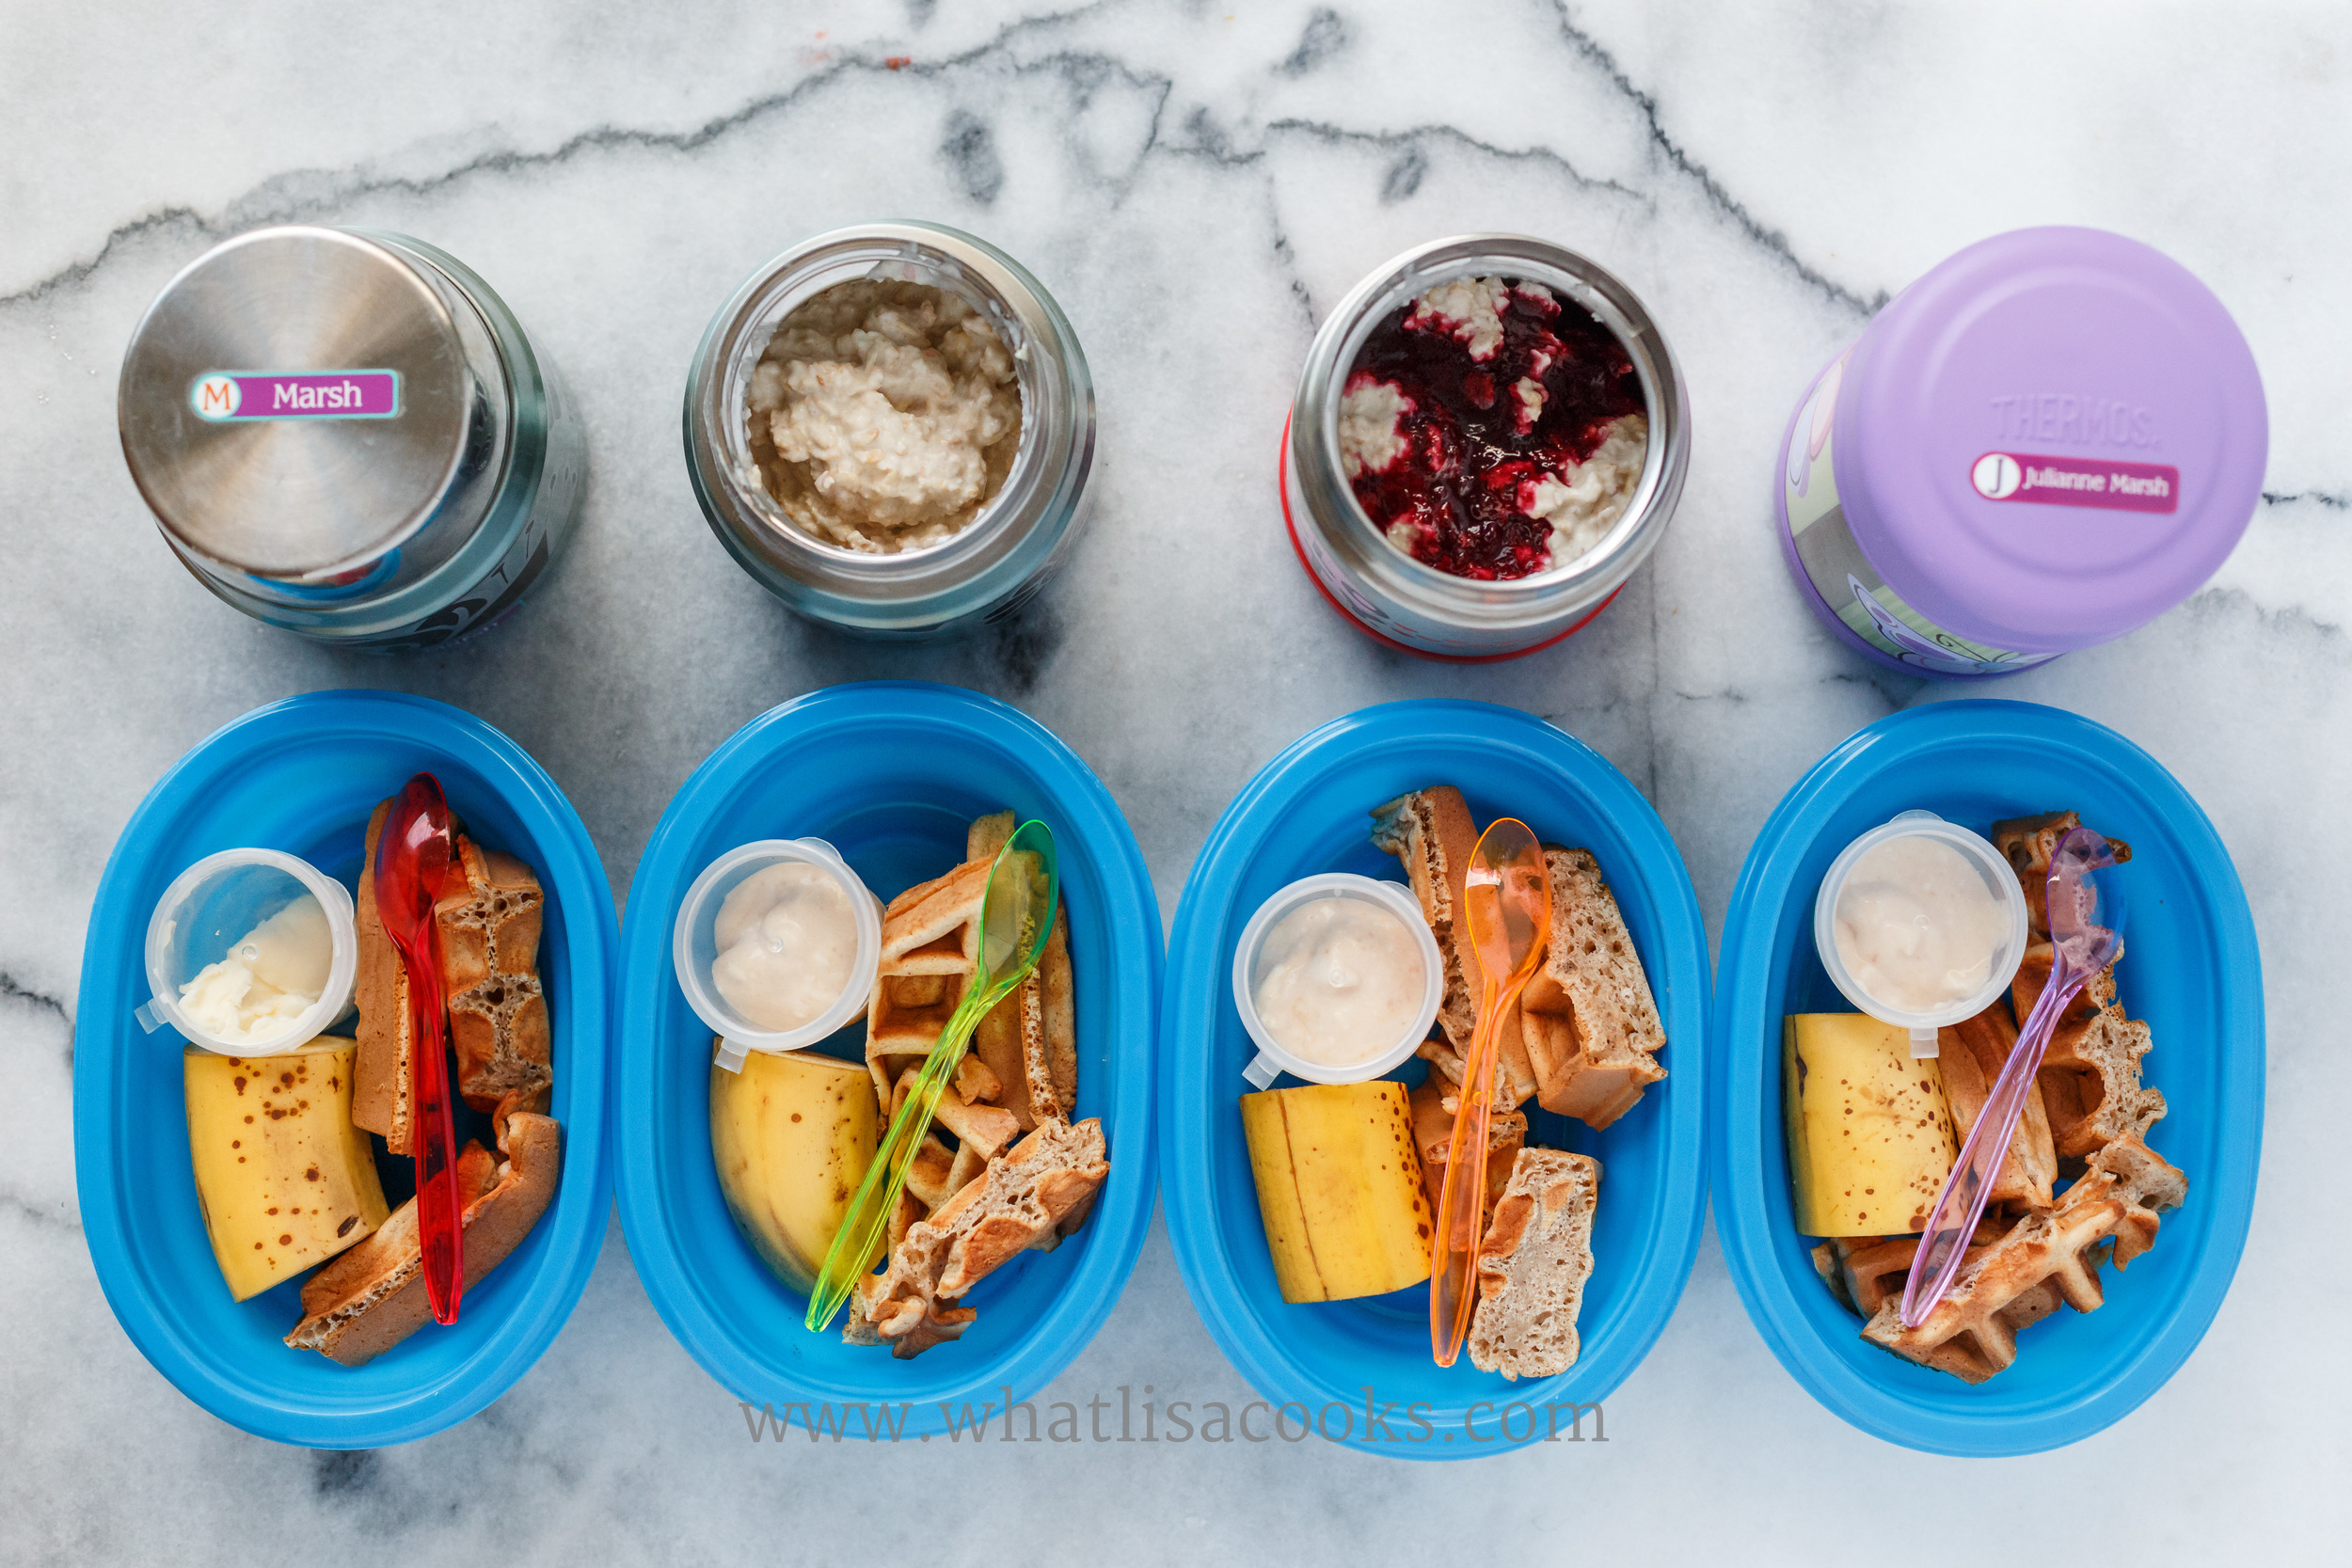 Breakfast for lunch day. In the thermos containers they have my  homemade muesli , one has homemade blackberry jam with it. They also have some strips of leftover waffle, and banana. My kids love breakfast for lunch, this was almost all devoured.